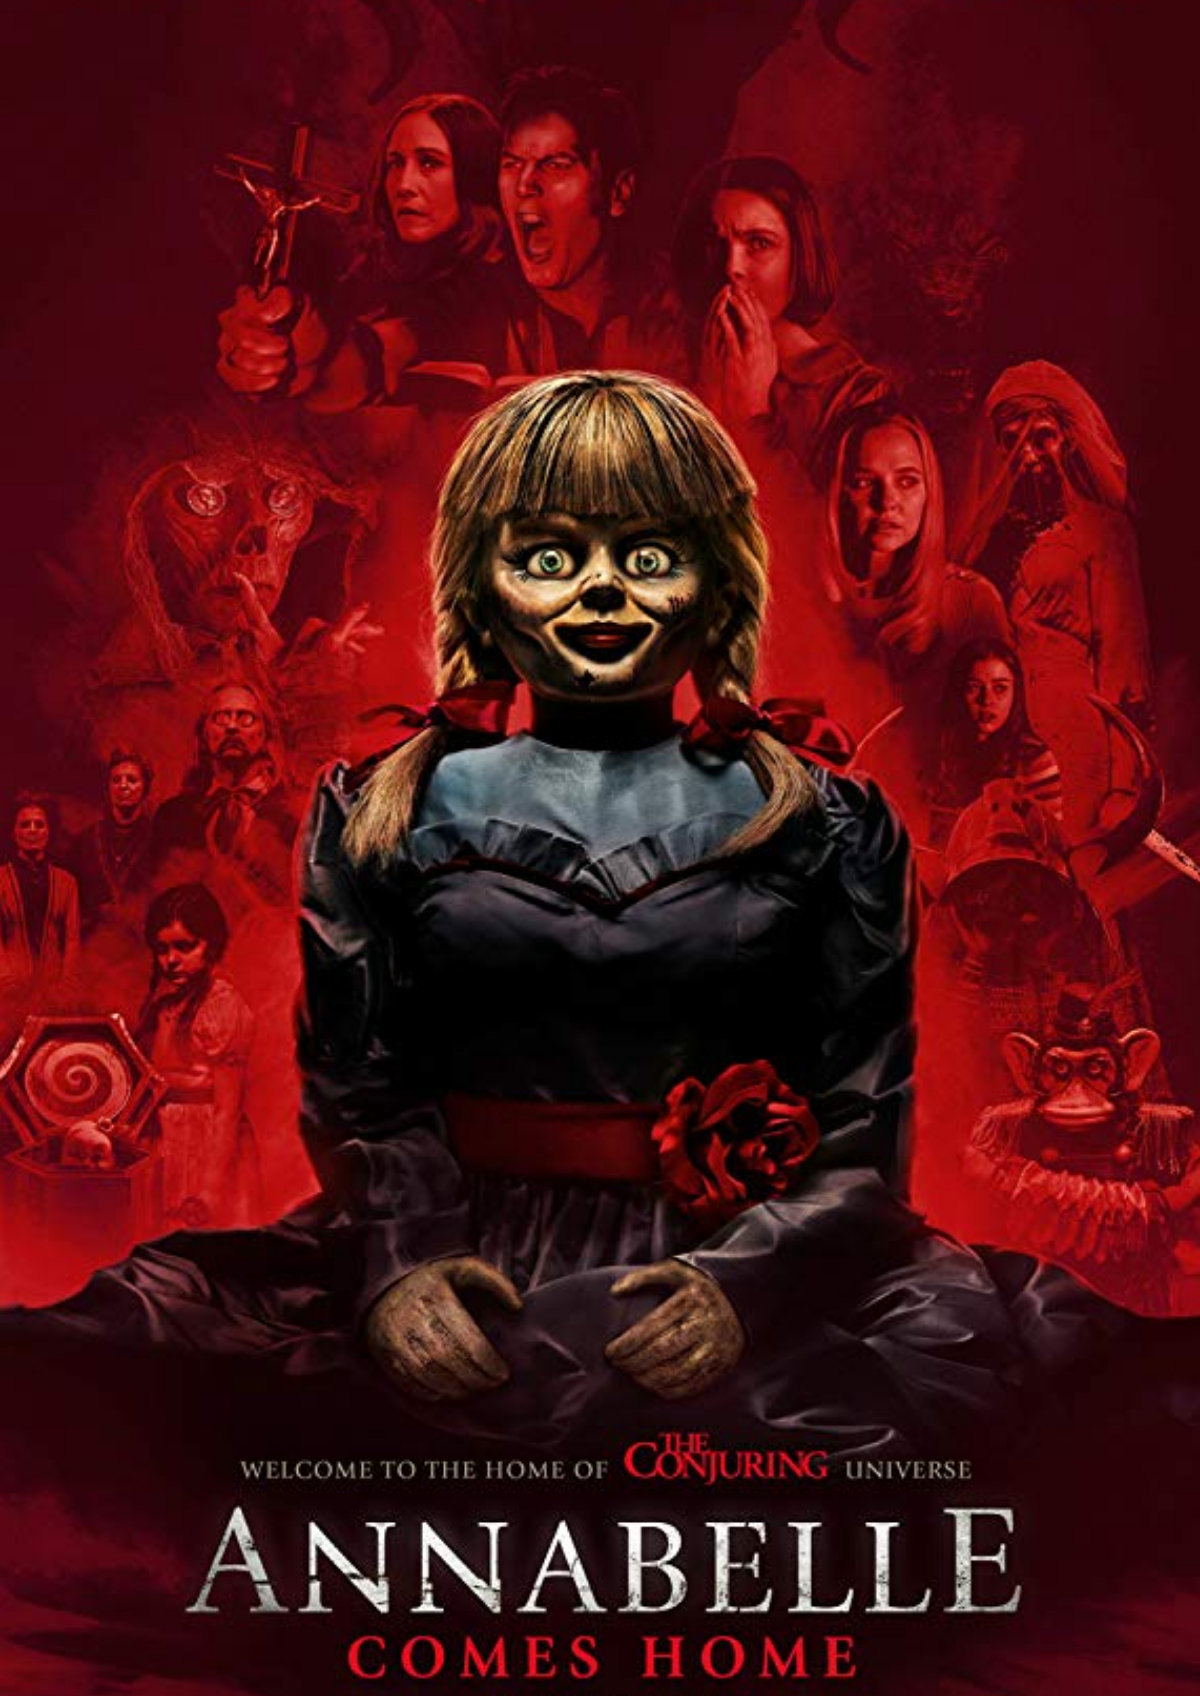 'Annabelle Comes Home' movie poster